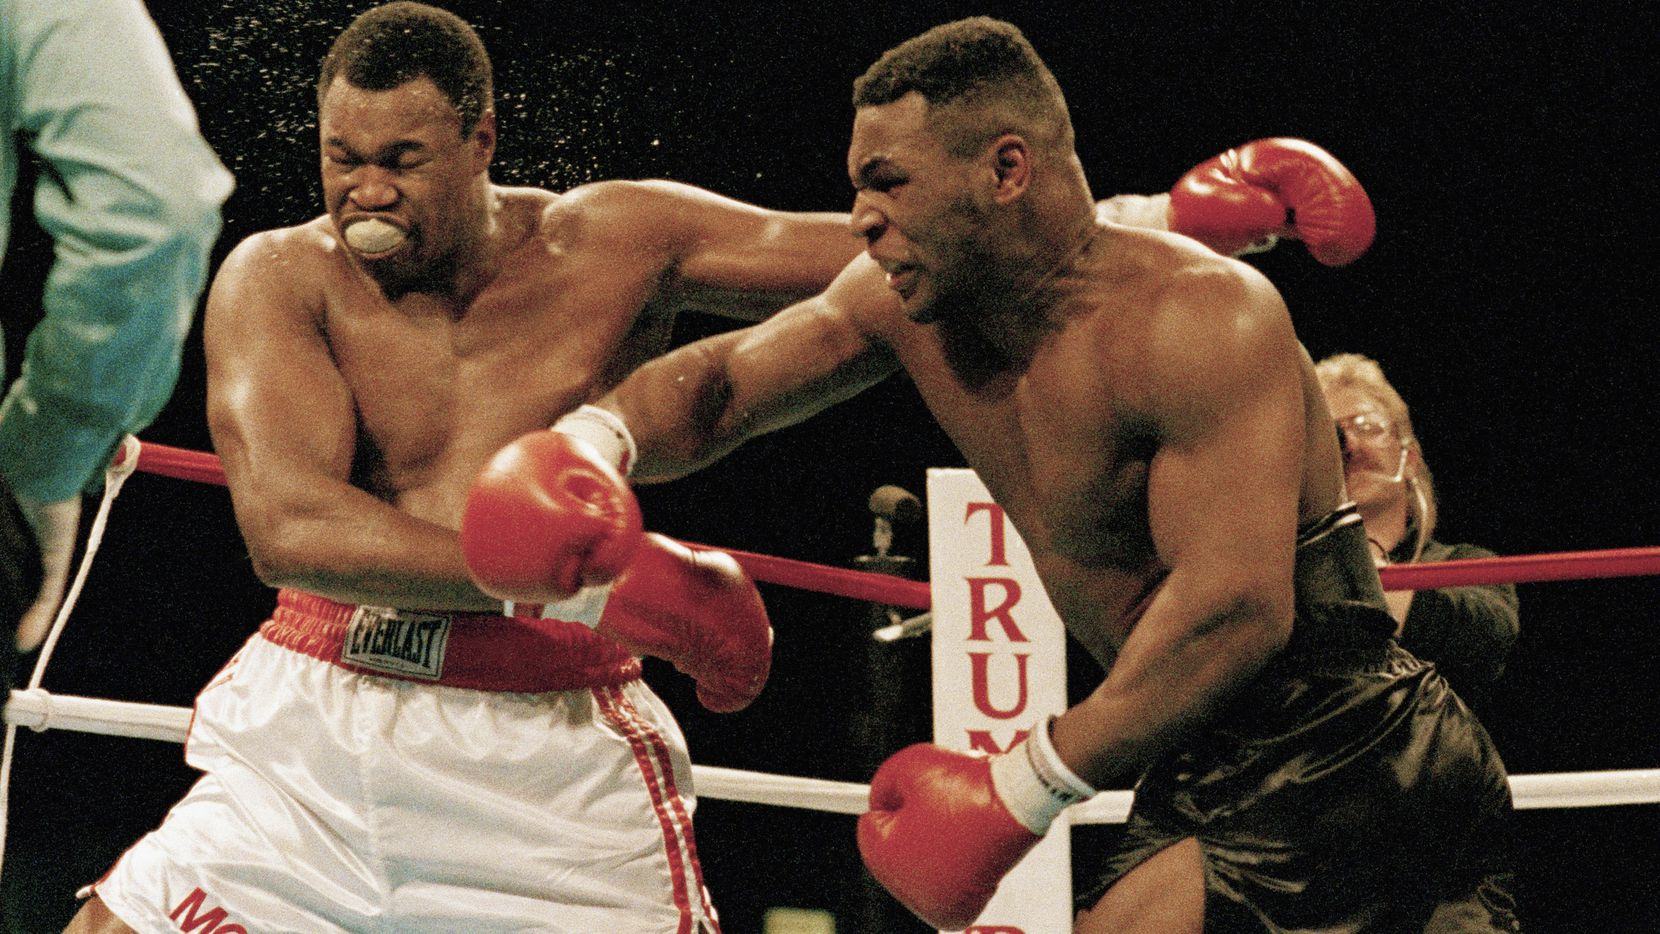 FILE - In this Jan. 22, 1988, file photo Larry Holmes bears brunt of a punch thrown by Mike Tyson during a heavyweight title boxing fight in Atlantic City, N.J. (AP Photo/File)